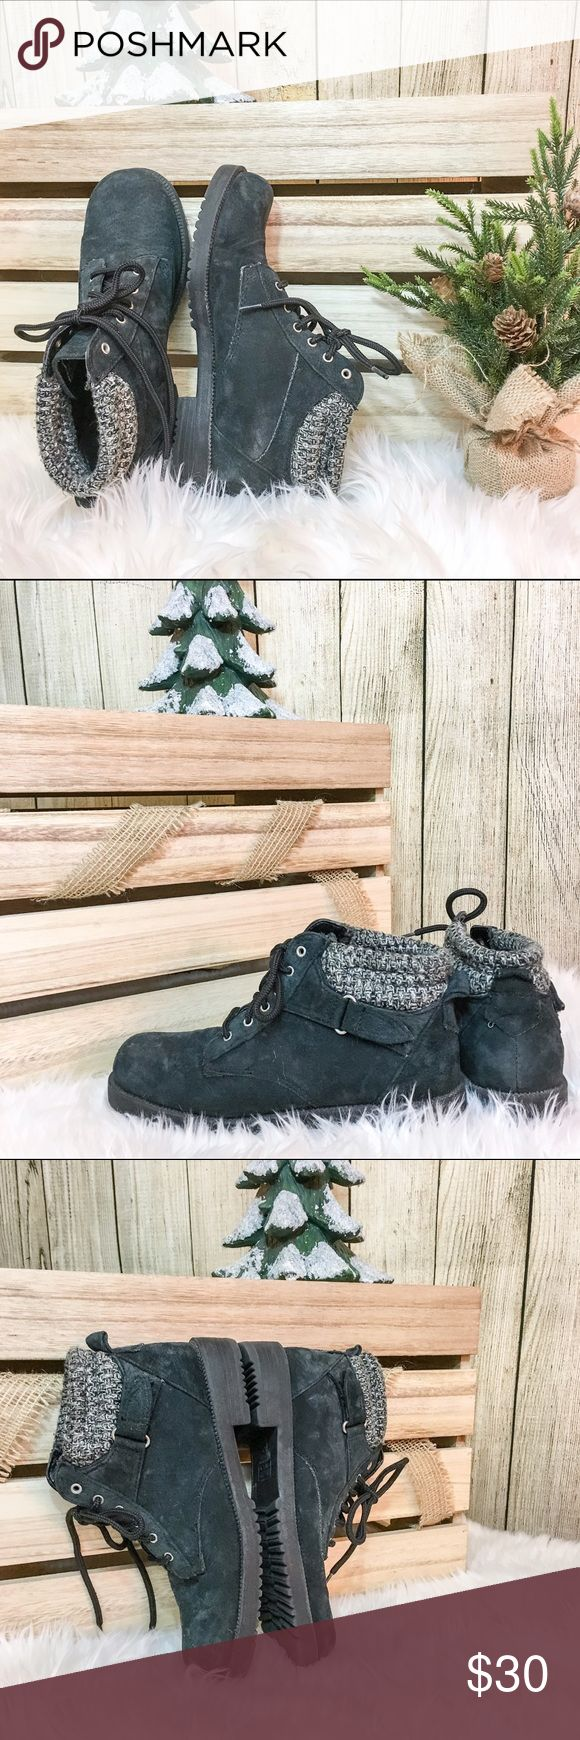 Suede-Like Combat Boots 🎄Black suede-like material 🎄Knit Sweater cuff 🎄Velcro buckle on outer side of both shoes 🎄Thick and durable 🎄True to size; I wear 8 1/2-9 and they fit just slightly too snug  💋DISCLAIMER💋 - Reasonable offers accepted on items not marked 'price firm' - 15% off on bundles of 2 or more items - I do not discuss prices in the comments, but feel free to ask any other questions🙂 Shoes Combat & Moto Boots